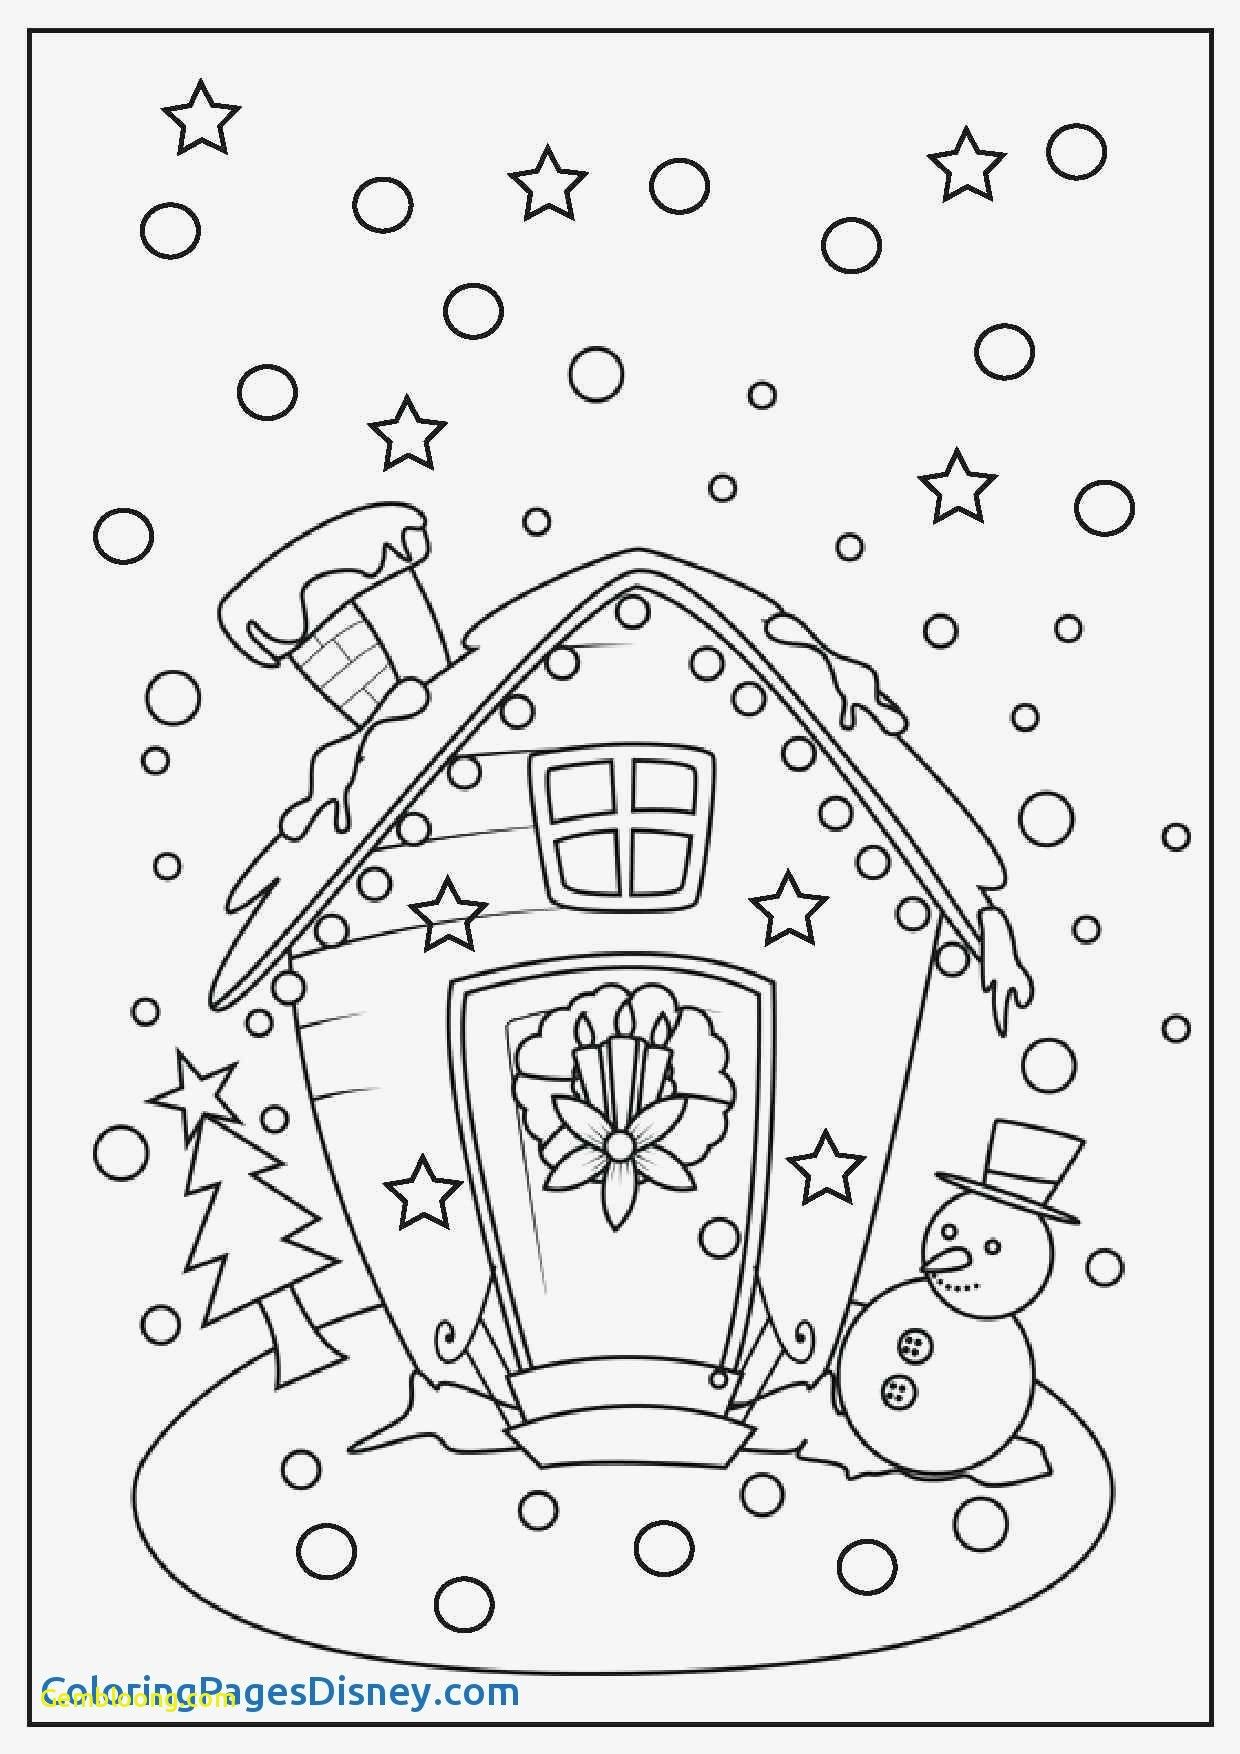 Christmas Colouring Pages Ks2 Printable Christmas Coloring Pages Christmas Coloring Sheets Coloring Pages Inspirational